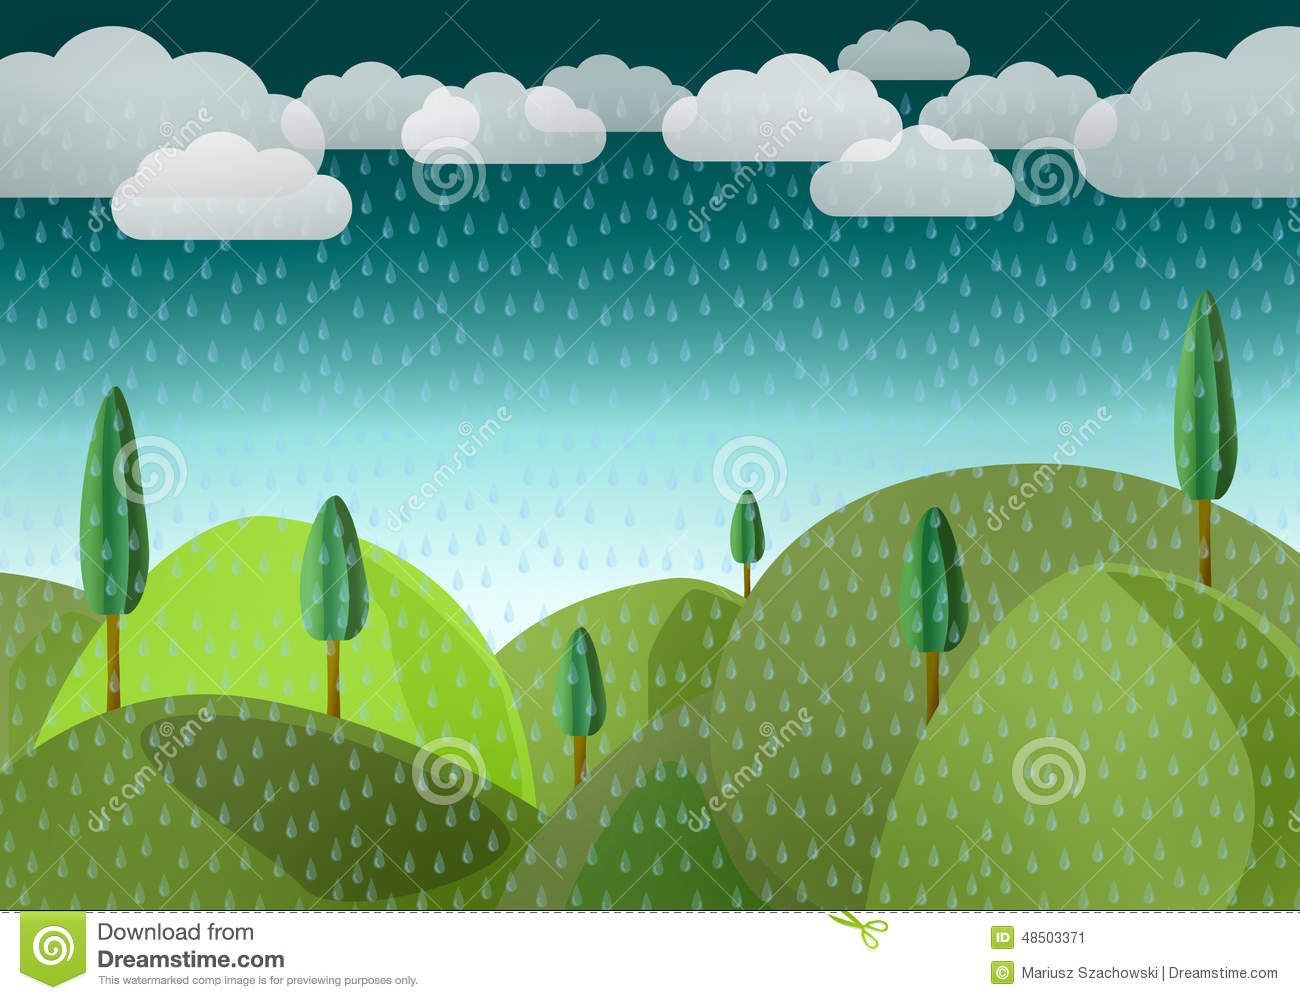 Rain over by mountains